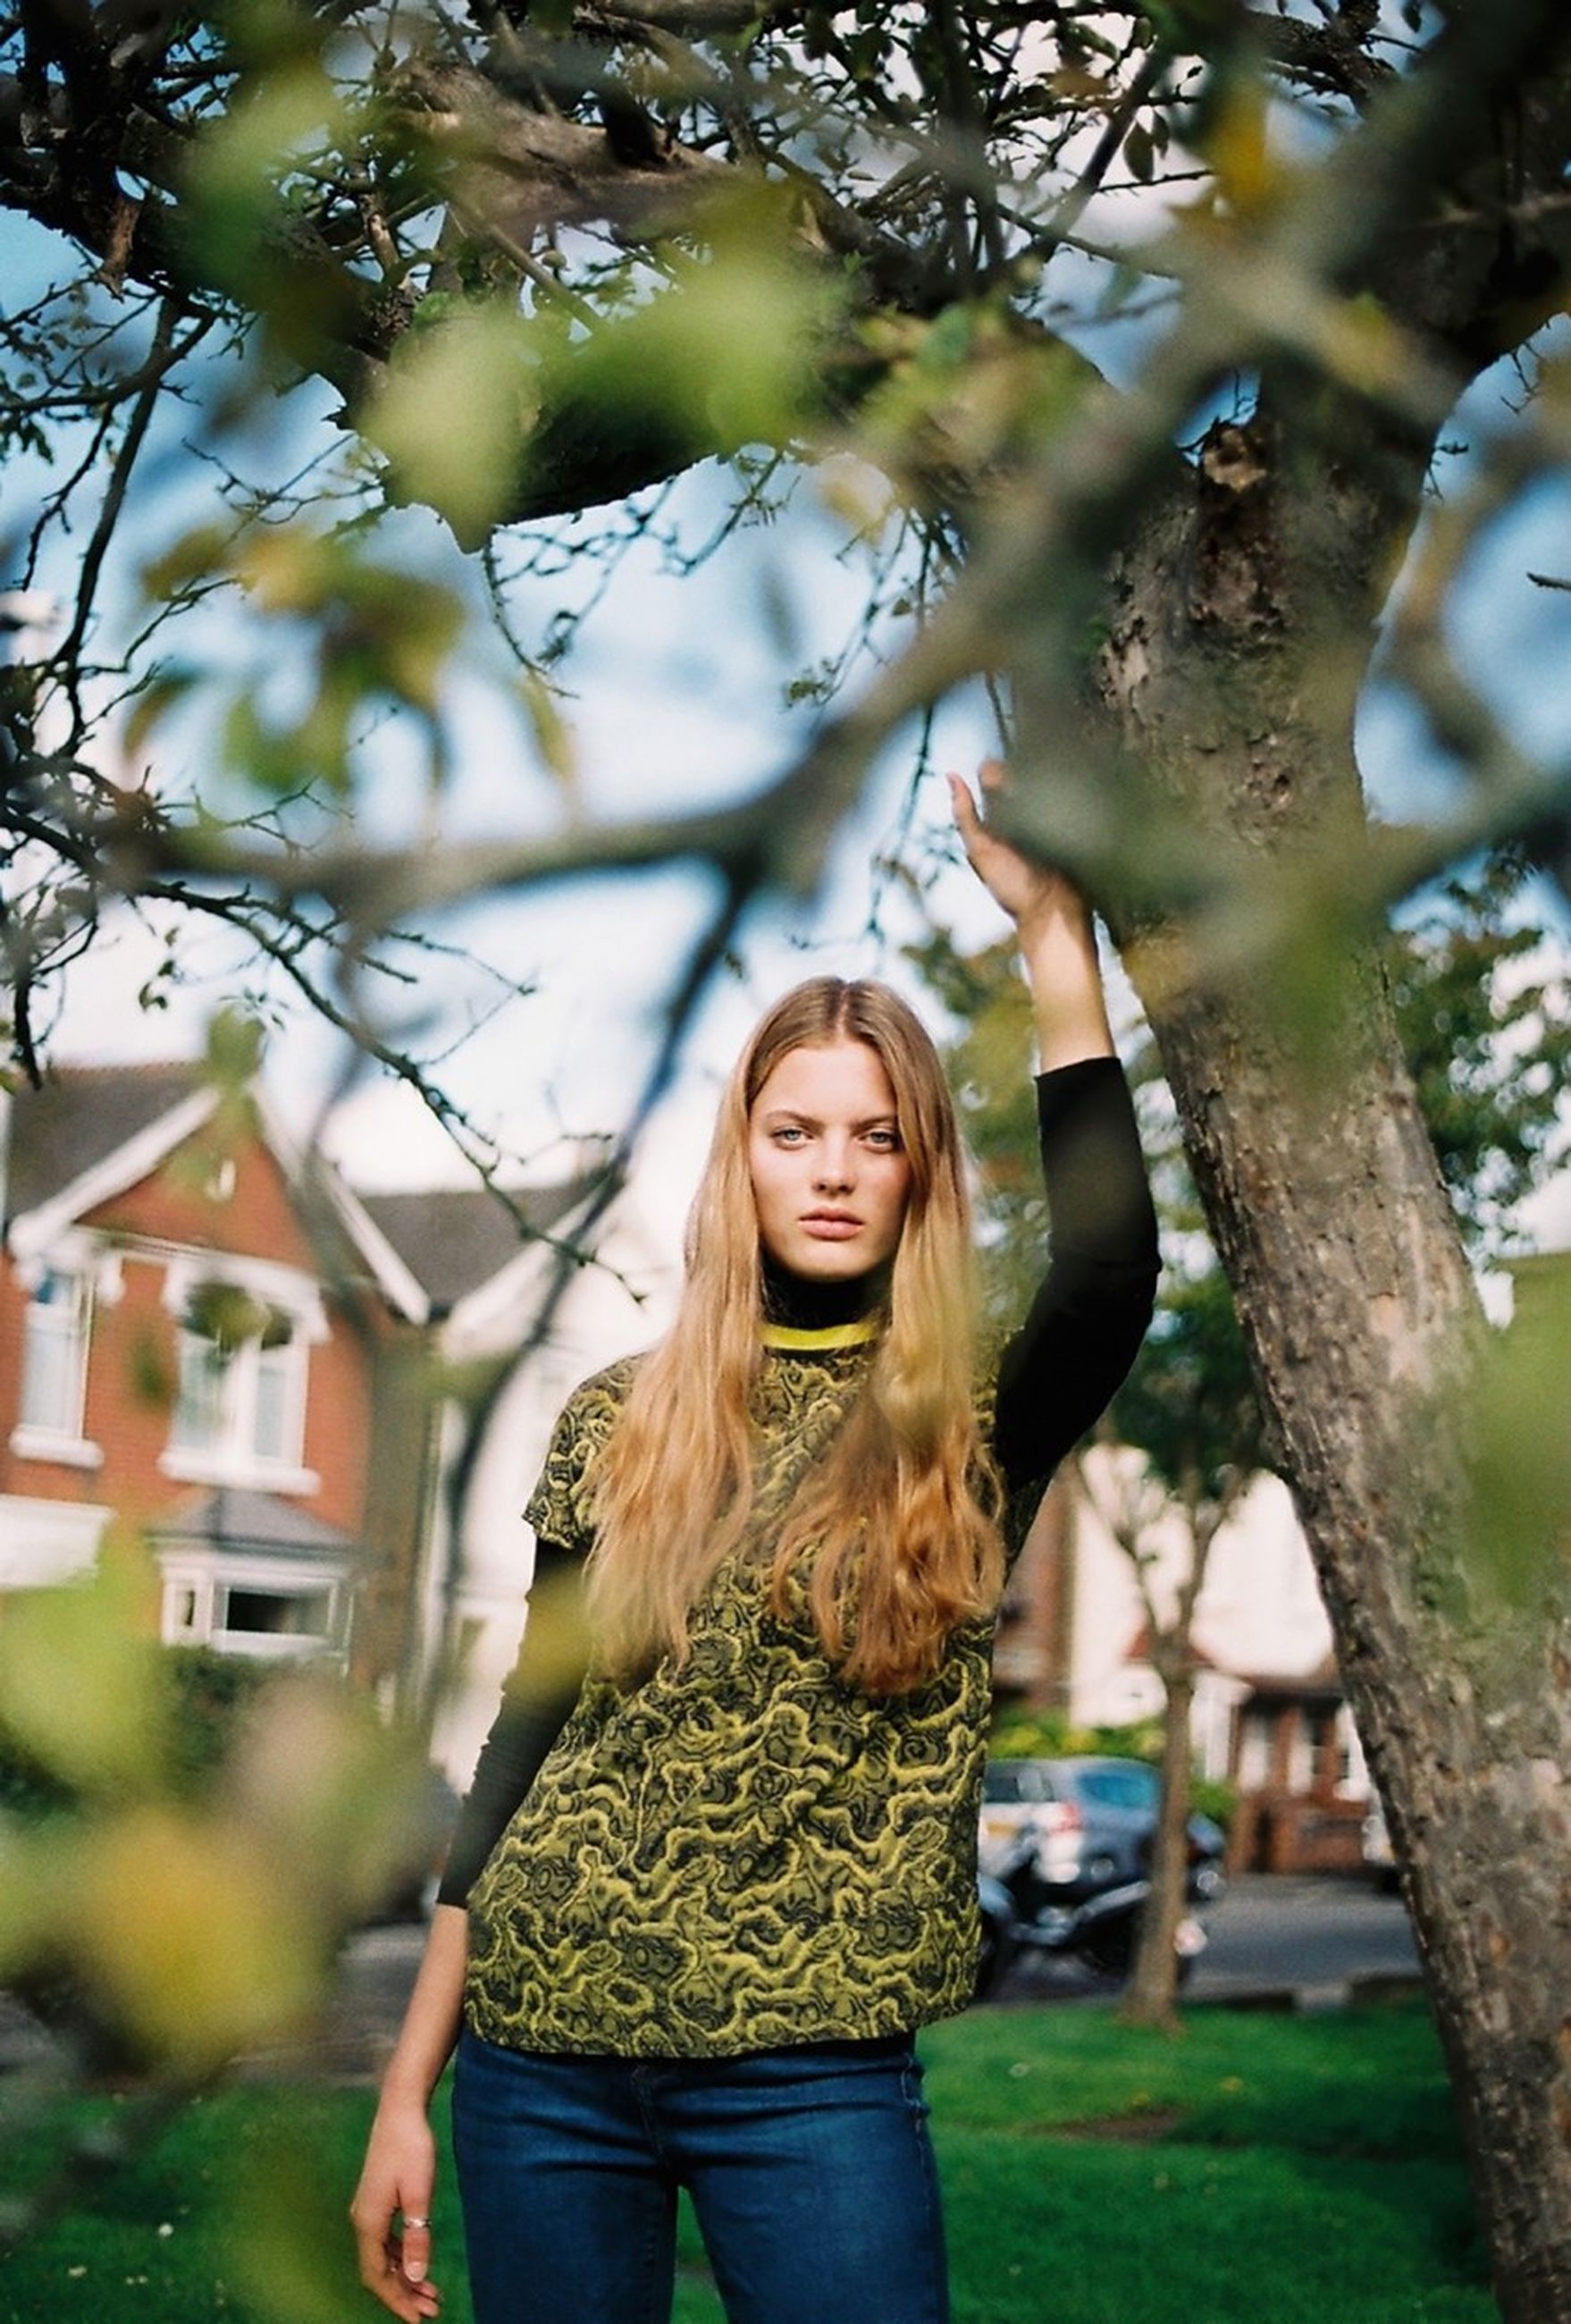 person, lifestyles, young women, leisure activity, tree, casual clothing, portrait, smiling, long hair, focus on foreground, day, outdoors, toothy smile, beauty, enjoyment, tree trunk